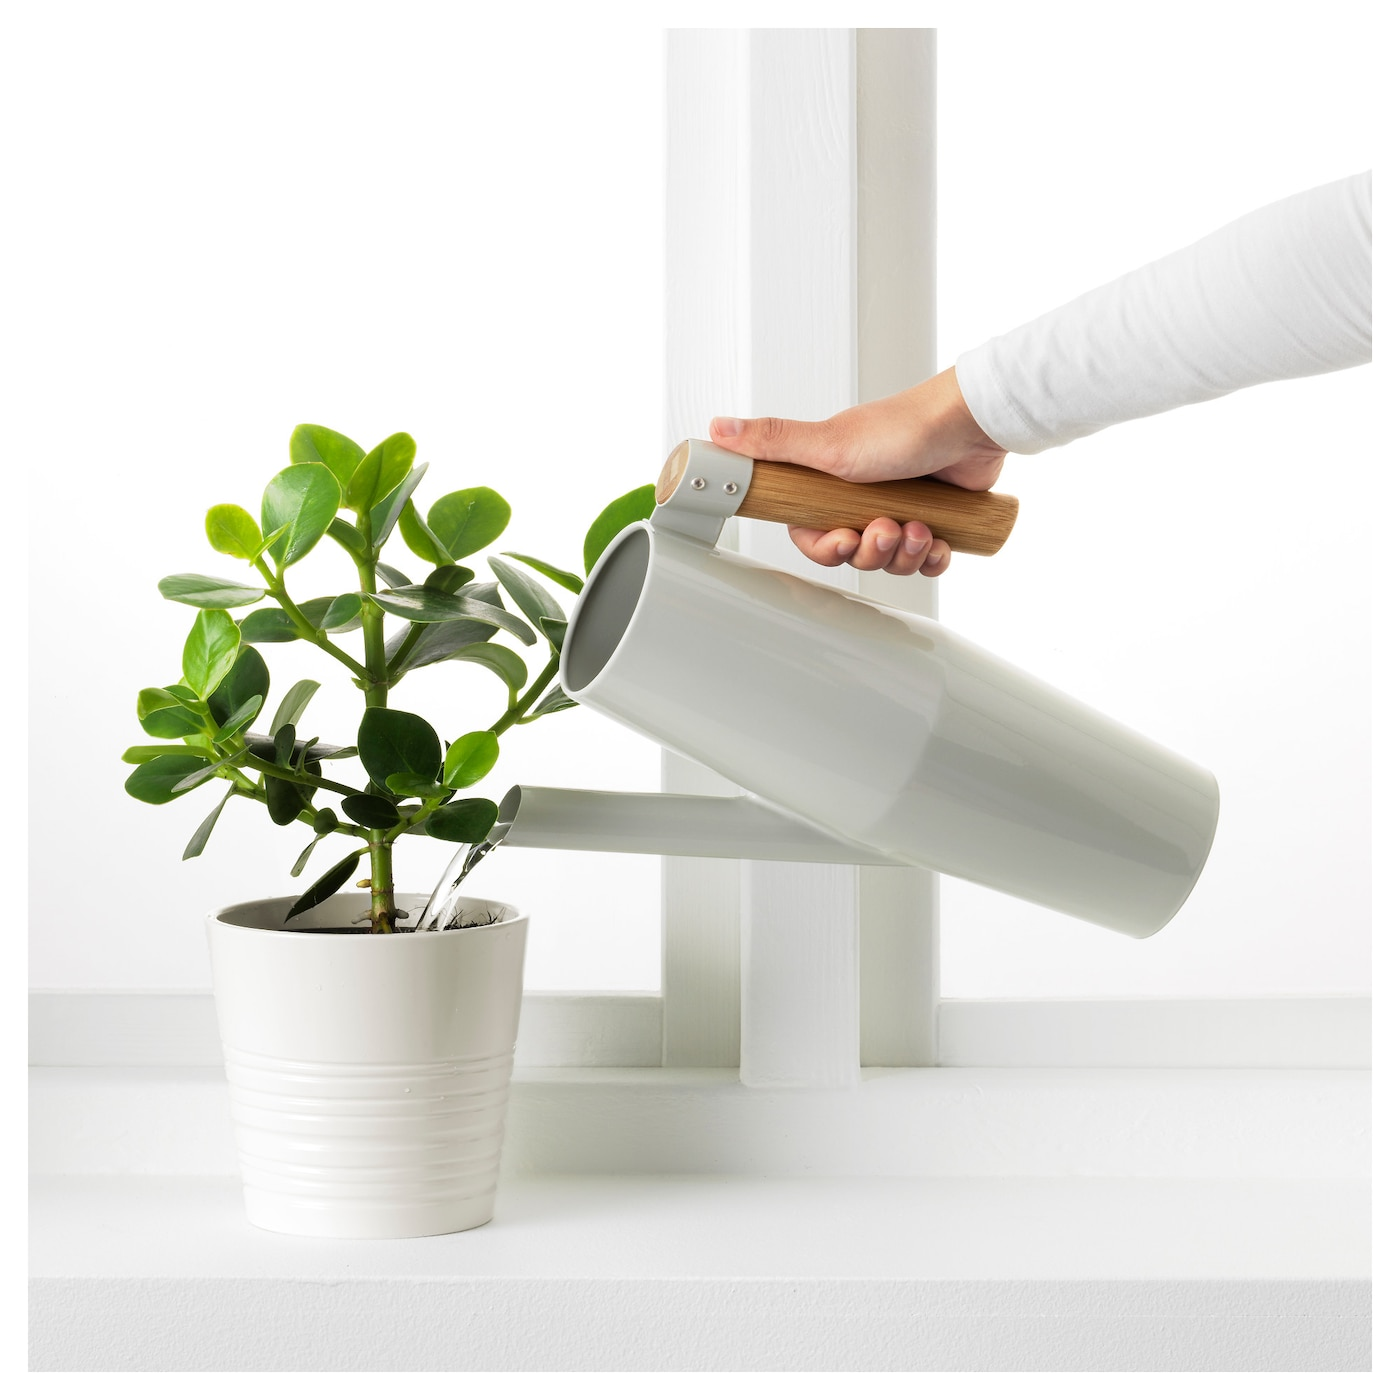 IKEA BITTERGURKA watering can